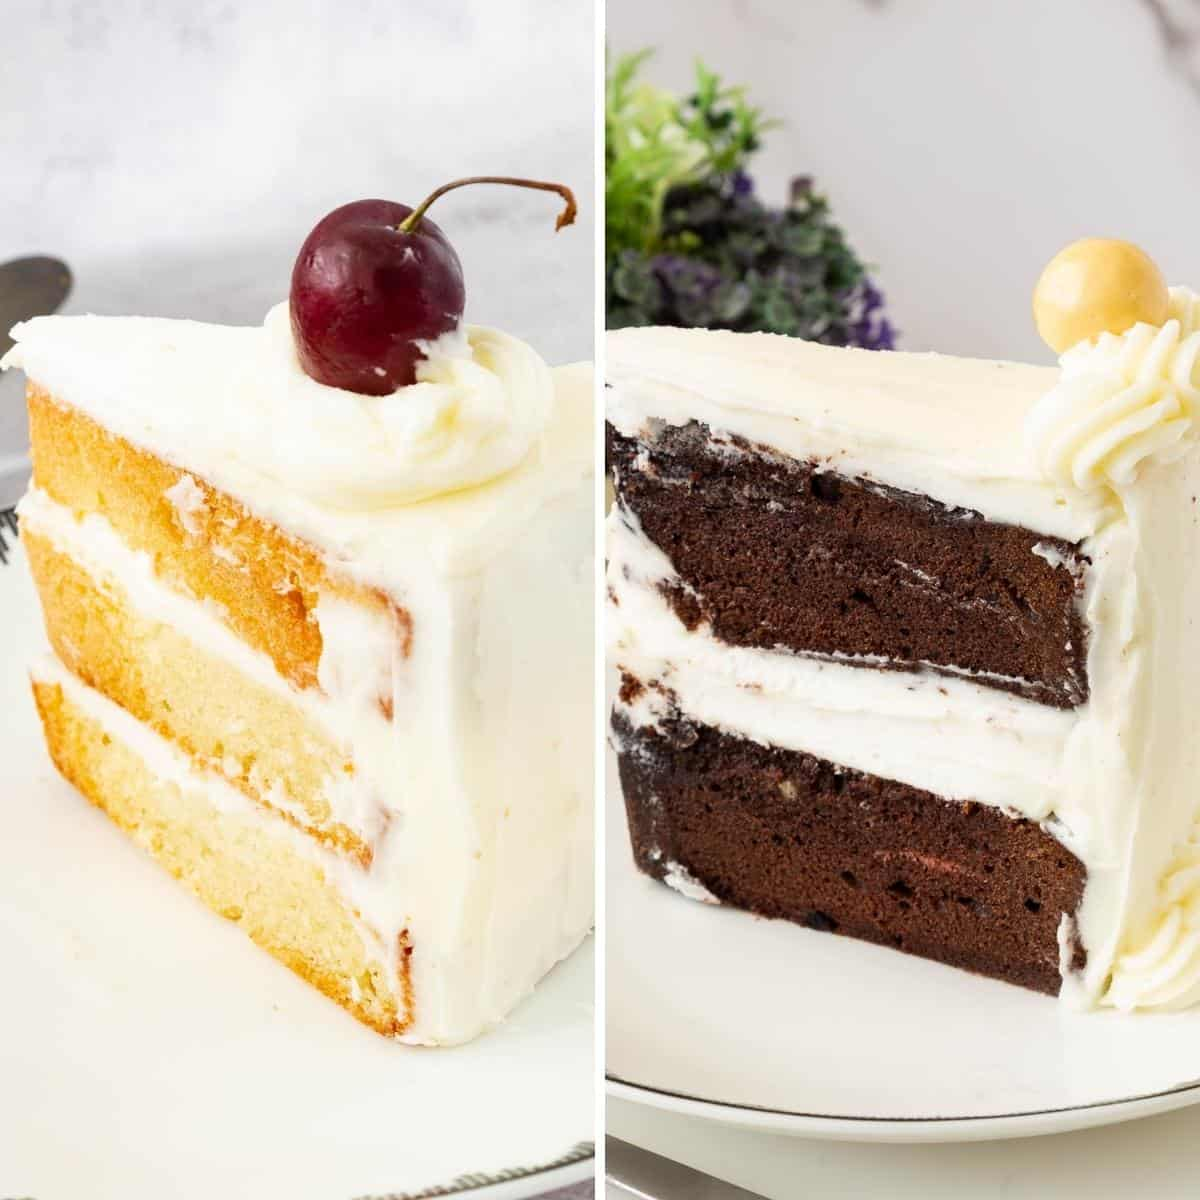 Two slices of chocolate and vanilla cake on a plate.